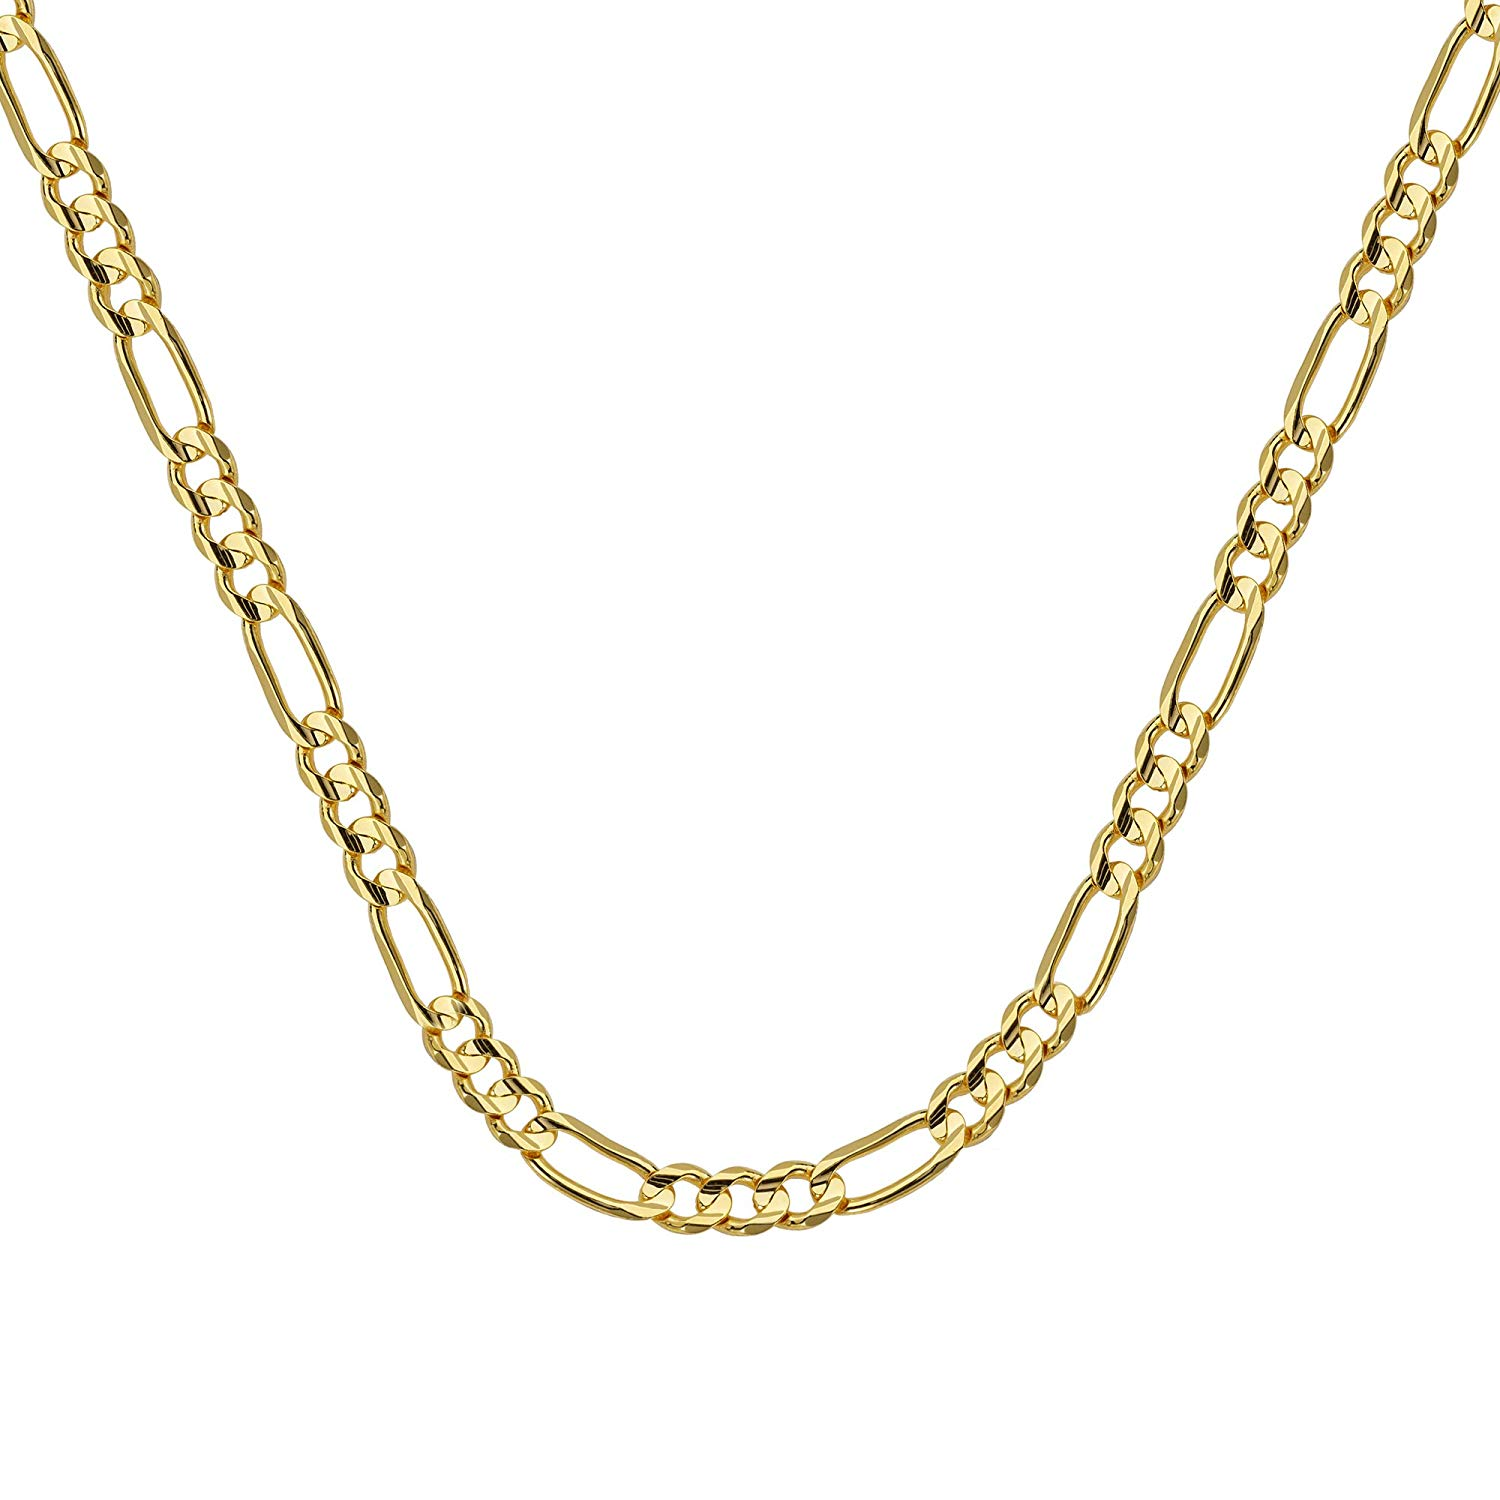 SNAKE CHAIN 14KT GOLD SNAKE CHAIN WITH LOBSTER LOCK 18 INCHES LONG